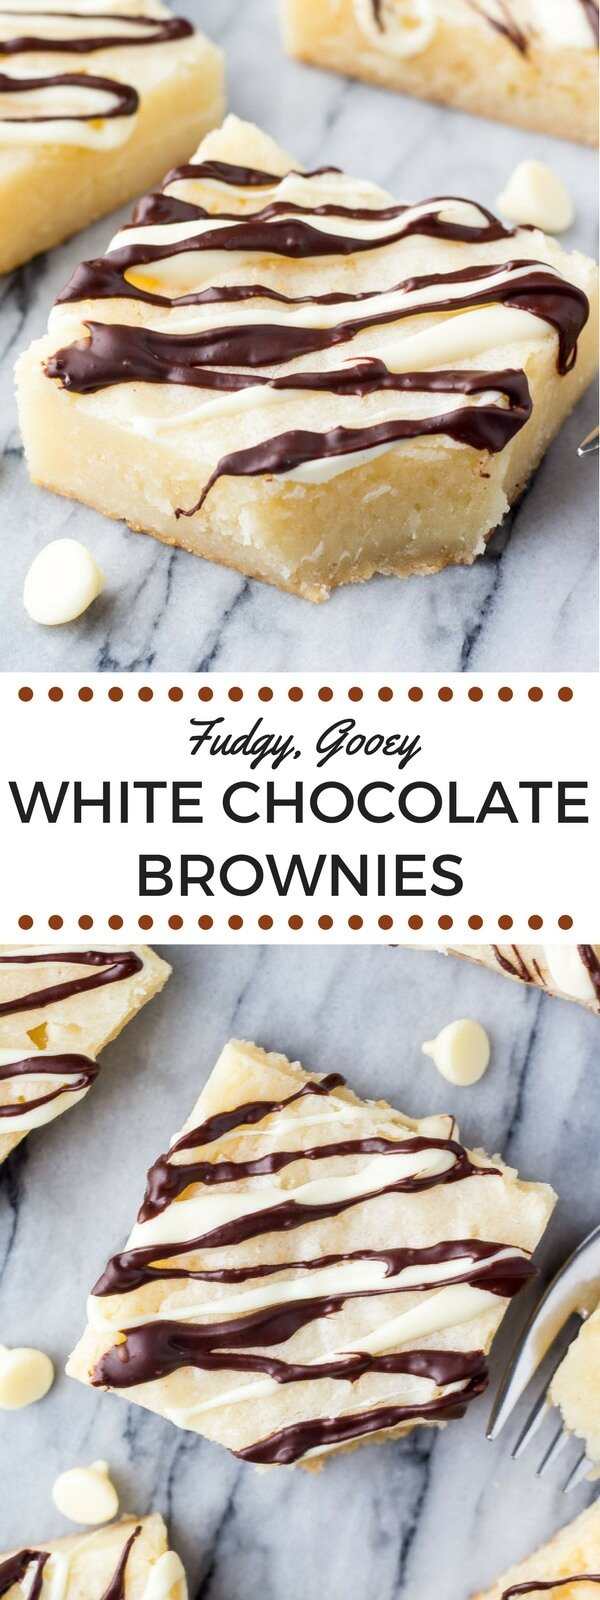 These super fudgy, gooey white chocolate brownies are made in one bowl and packed with delicious white chocolate. So decadent & so delicious #whitechocolate #brownies #fudgebrownies #chocolate